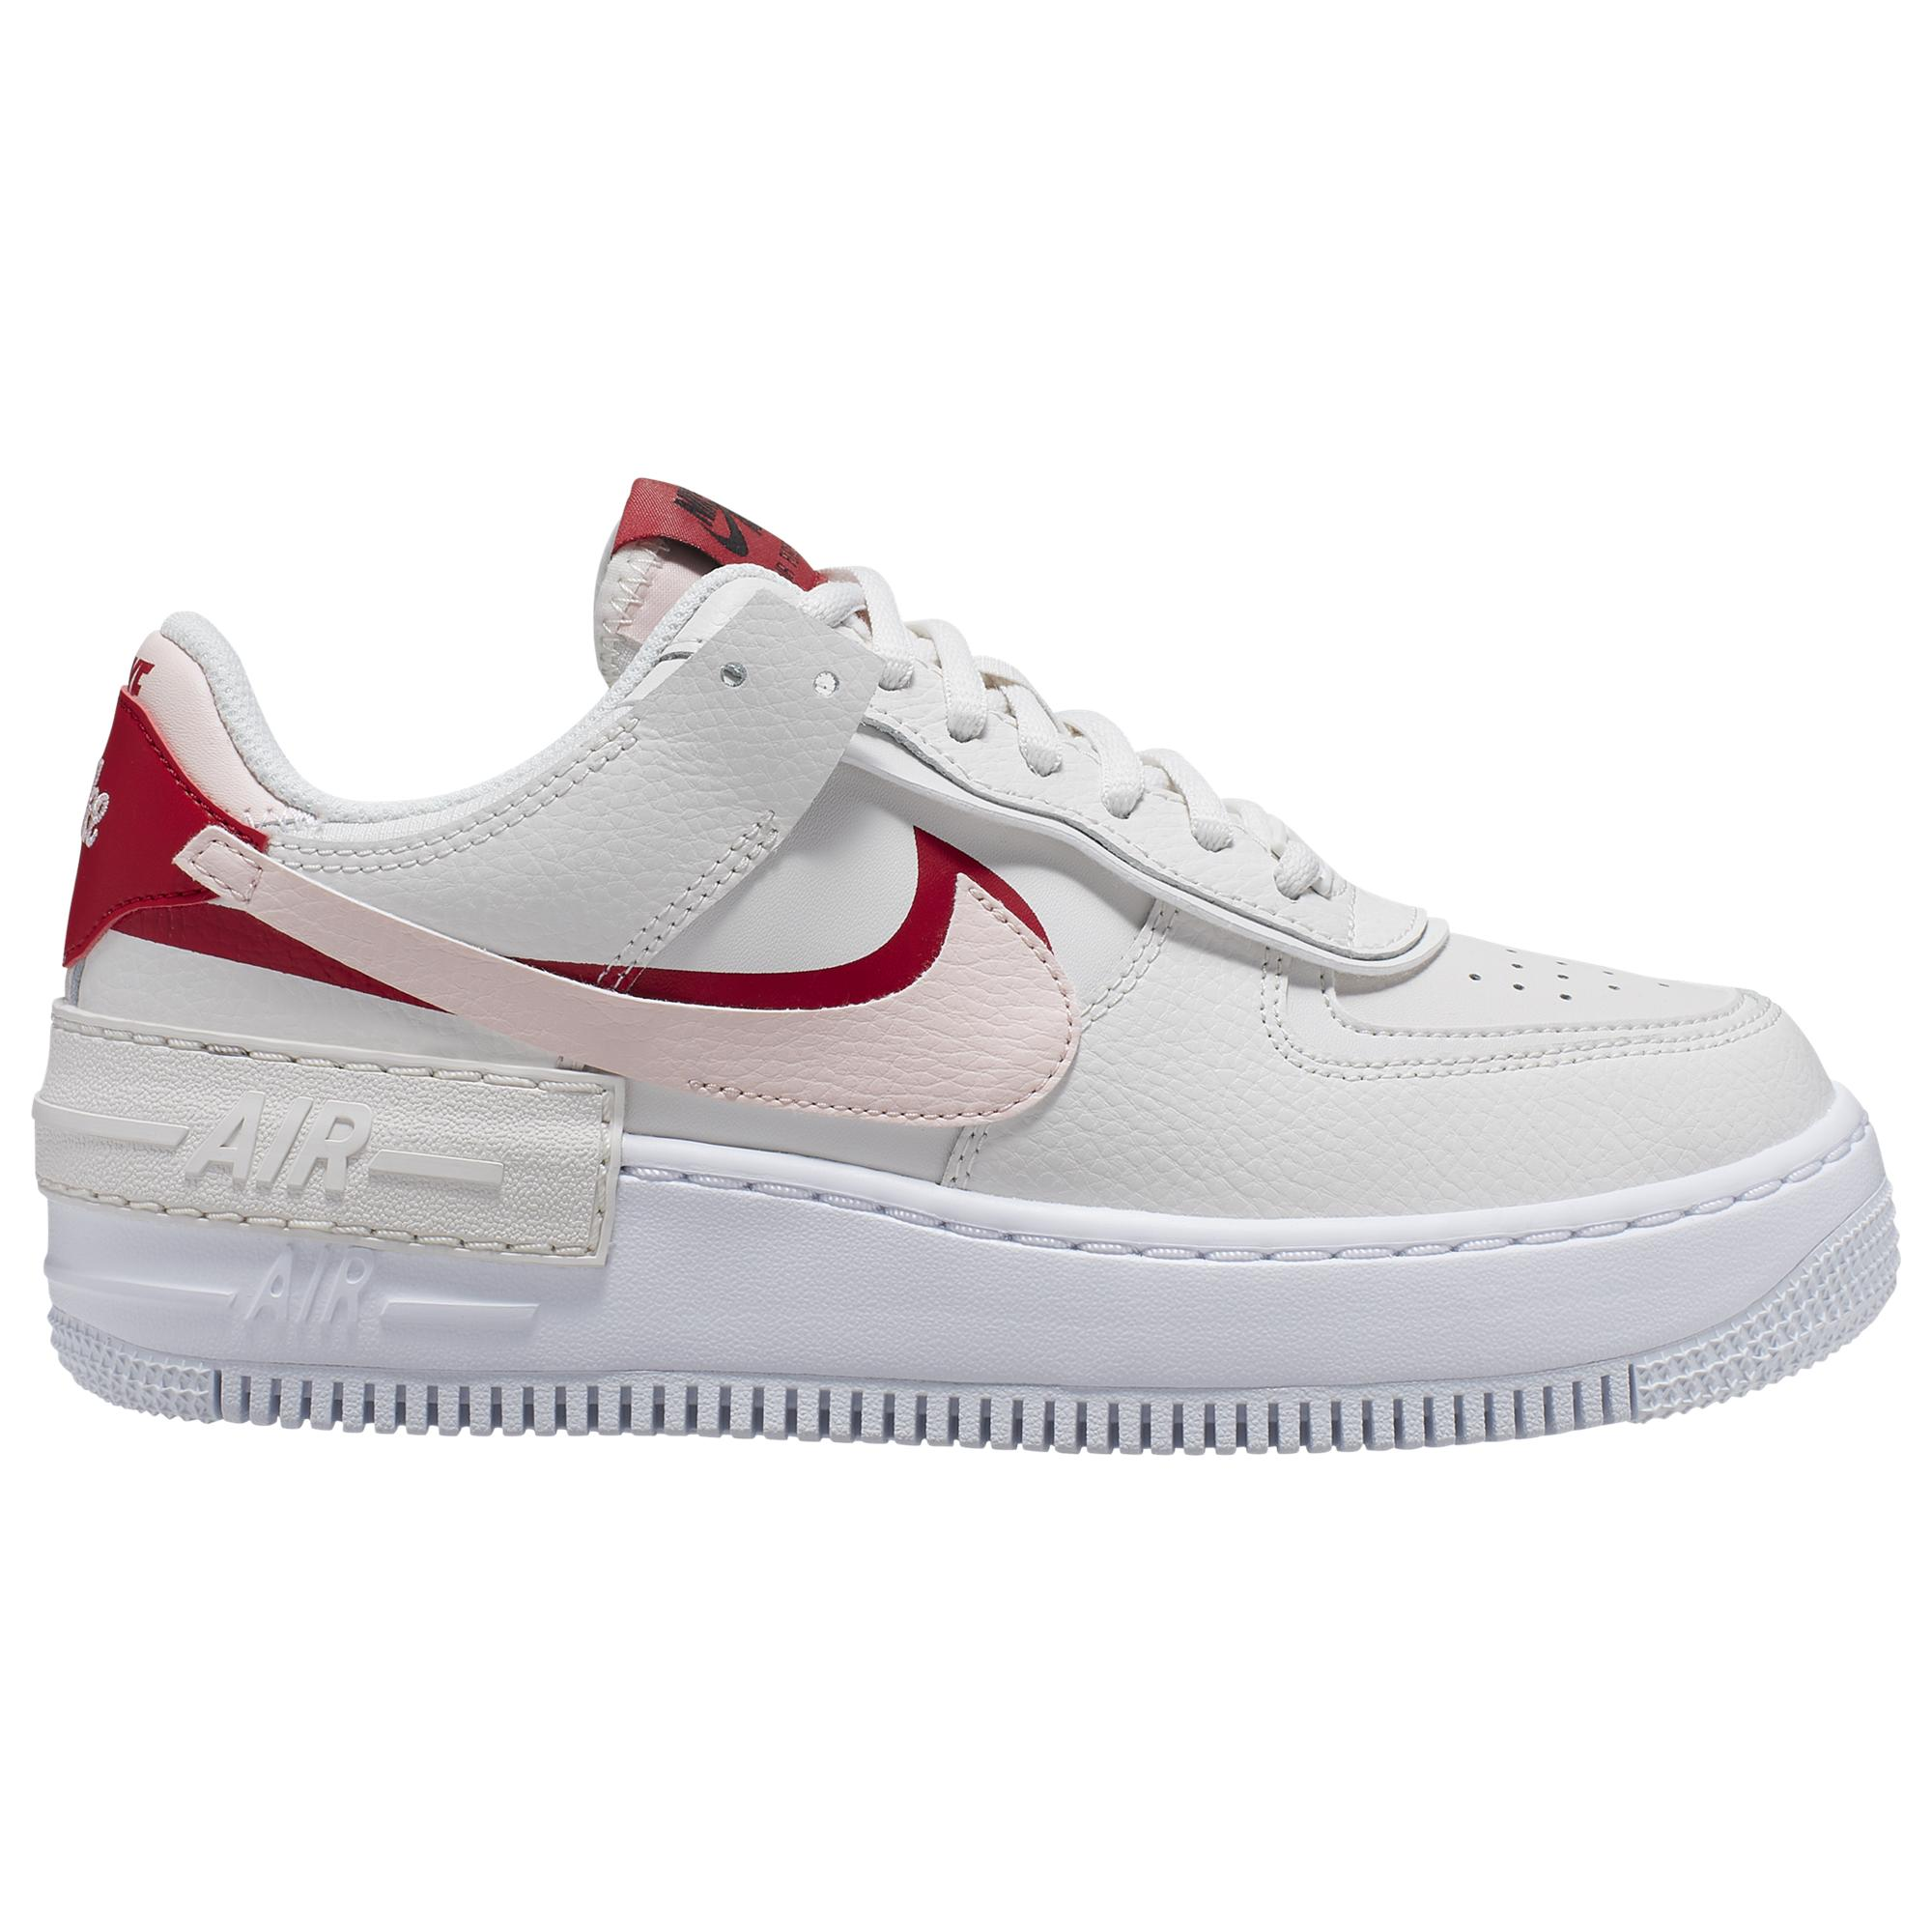 Nike Leather Air Force 1 Shadow Basketball Shoes in Gray - Lyst